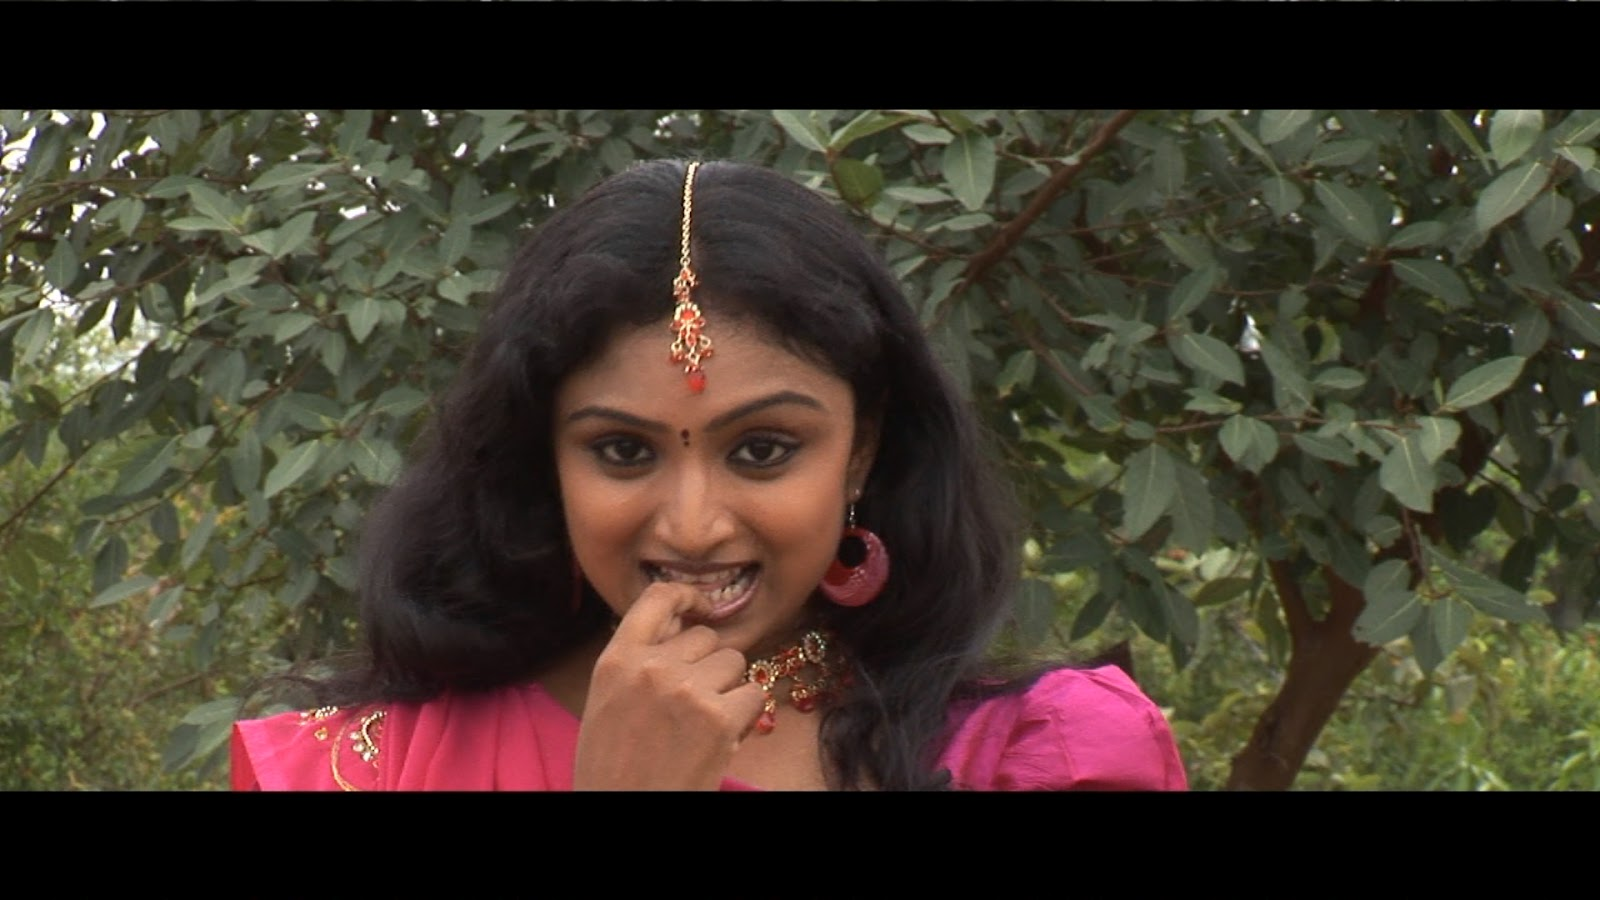 Kousalya aunty telugu movie images : Episode 195 running man eng sub